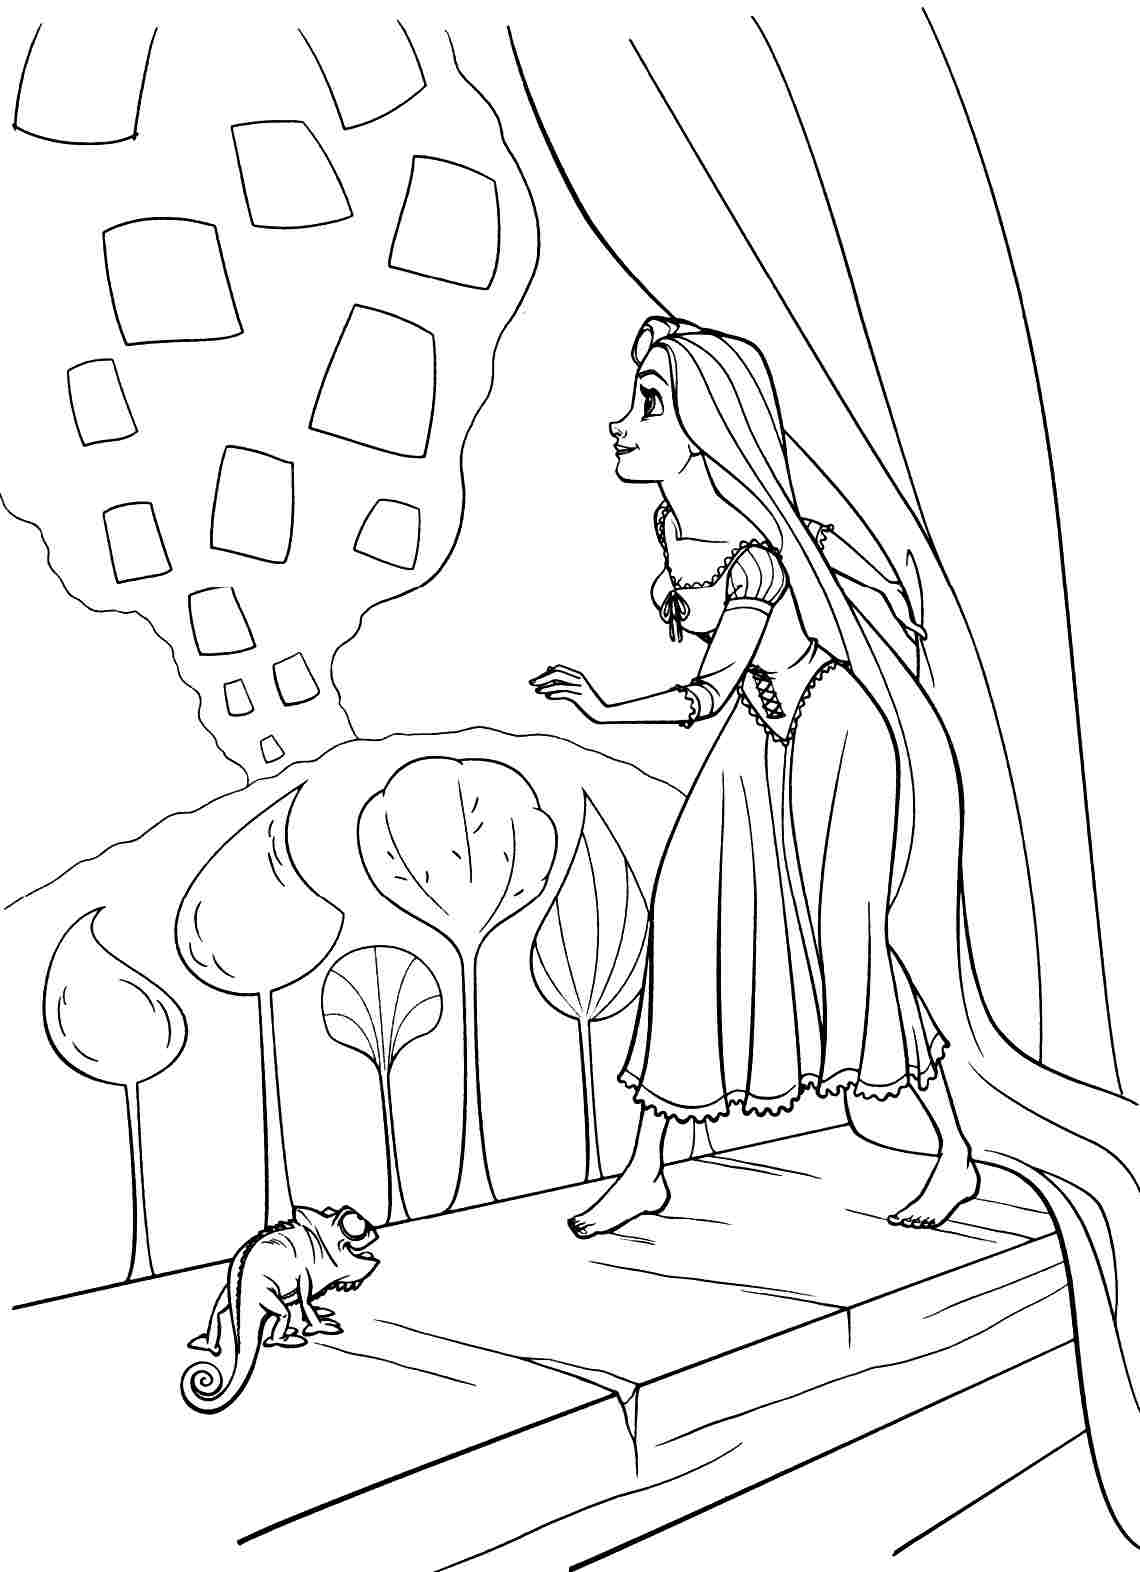 download coloring pages for kids - photo#33